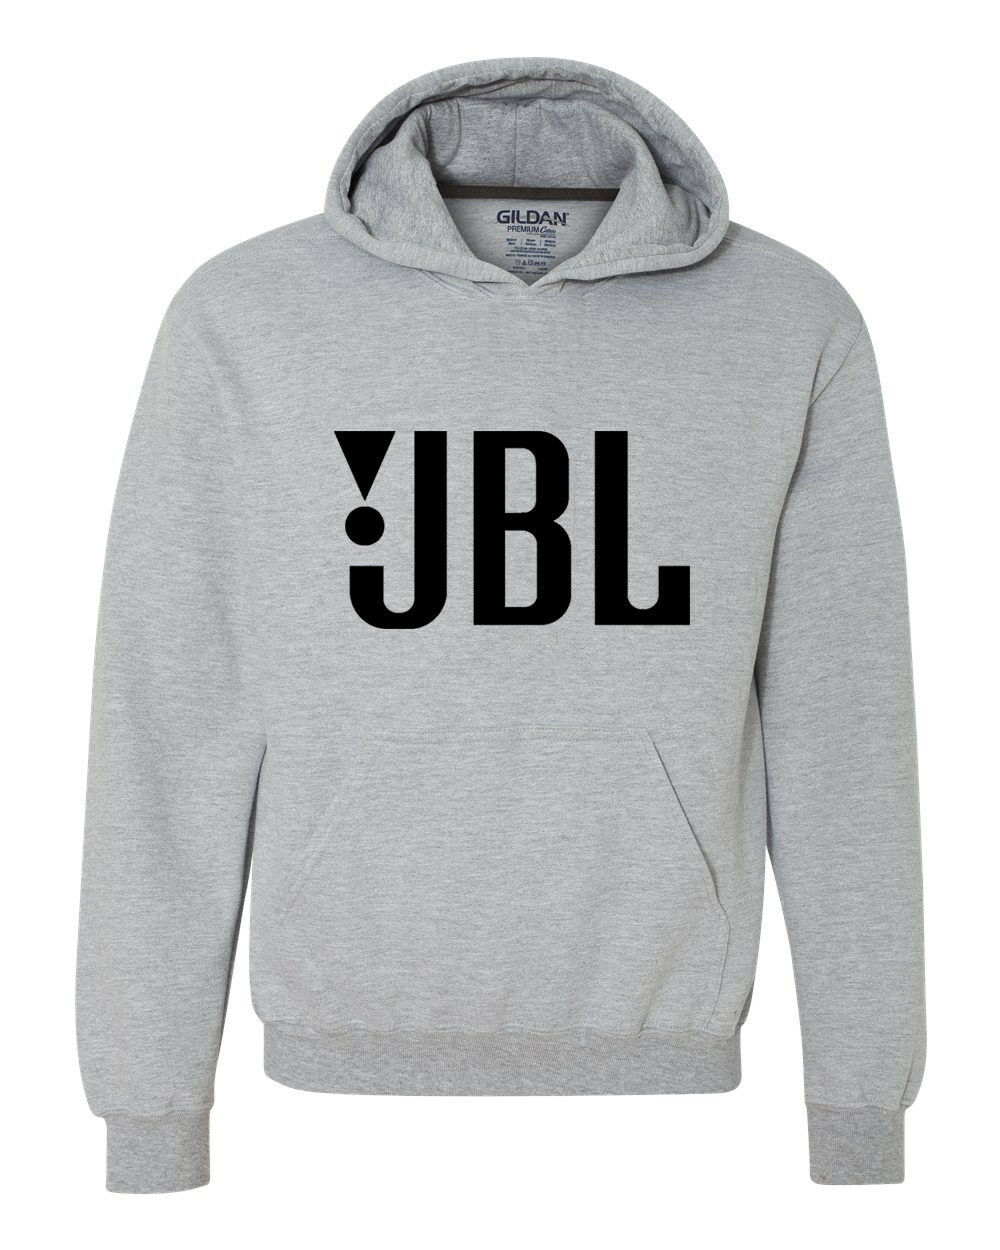 JBL Hoodie car stereo speaker sound system hi quality audio products graphic tee